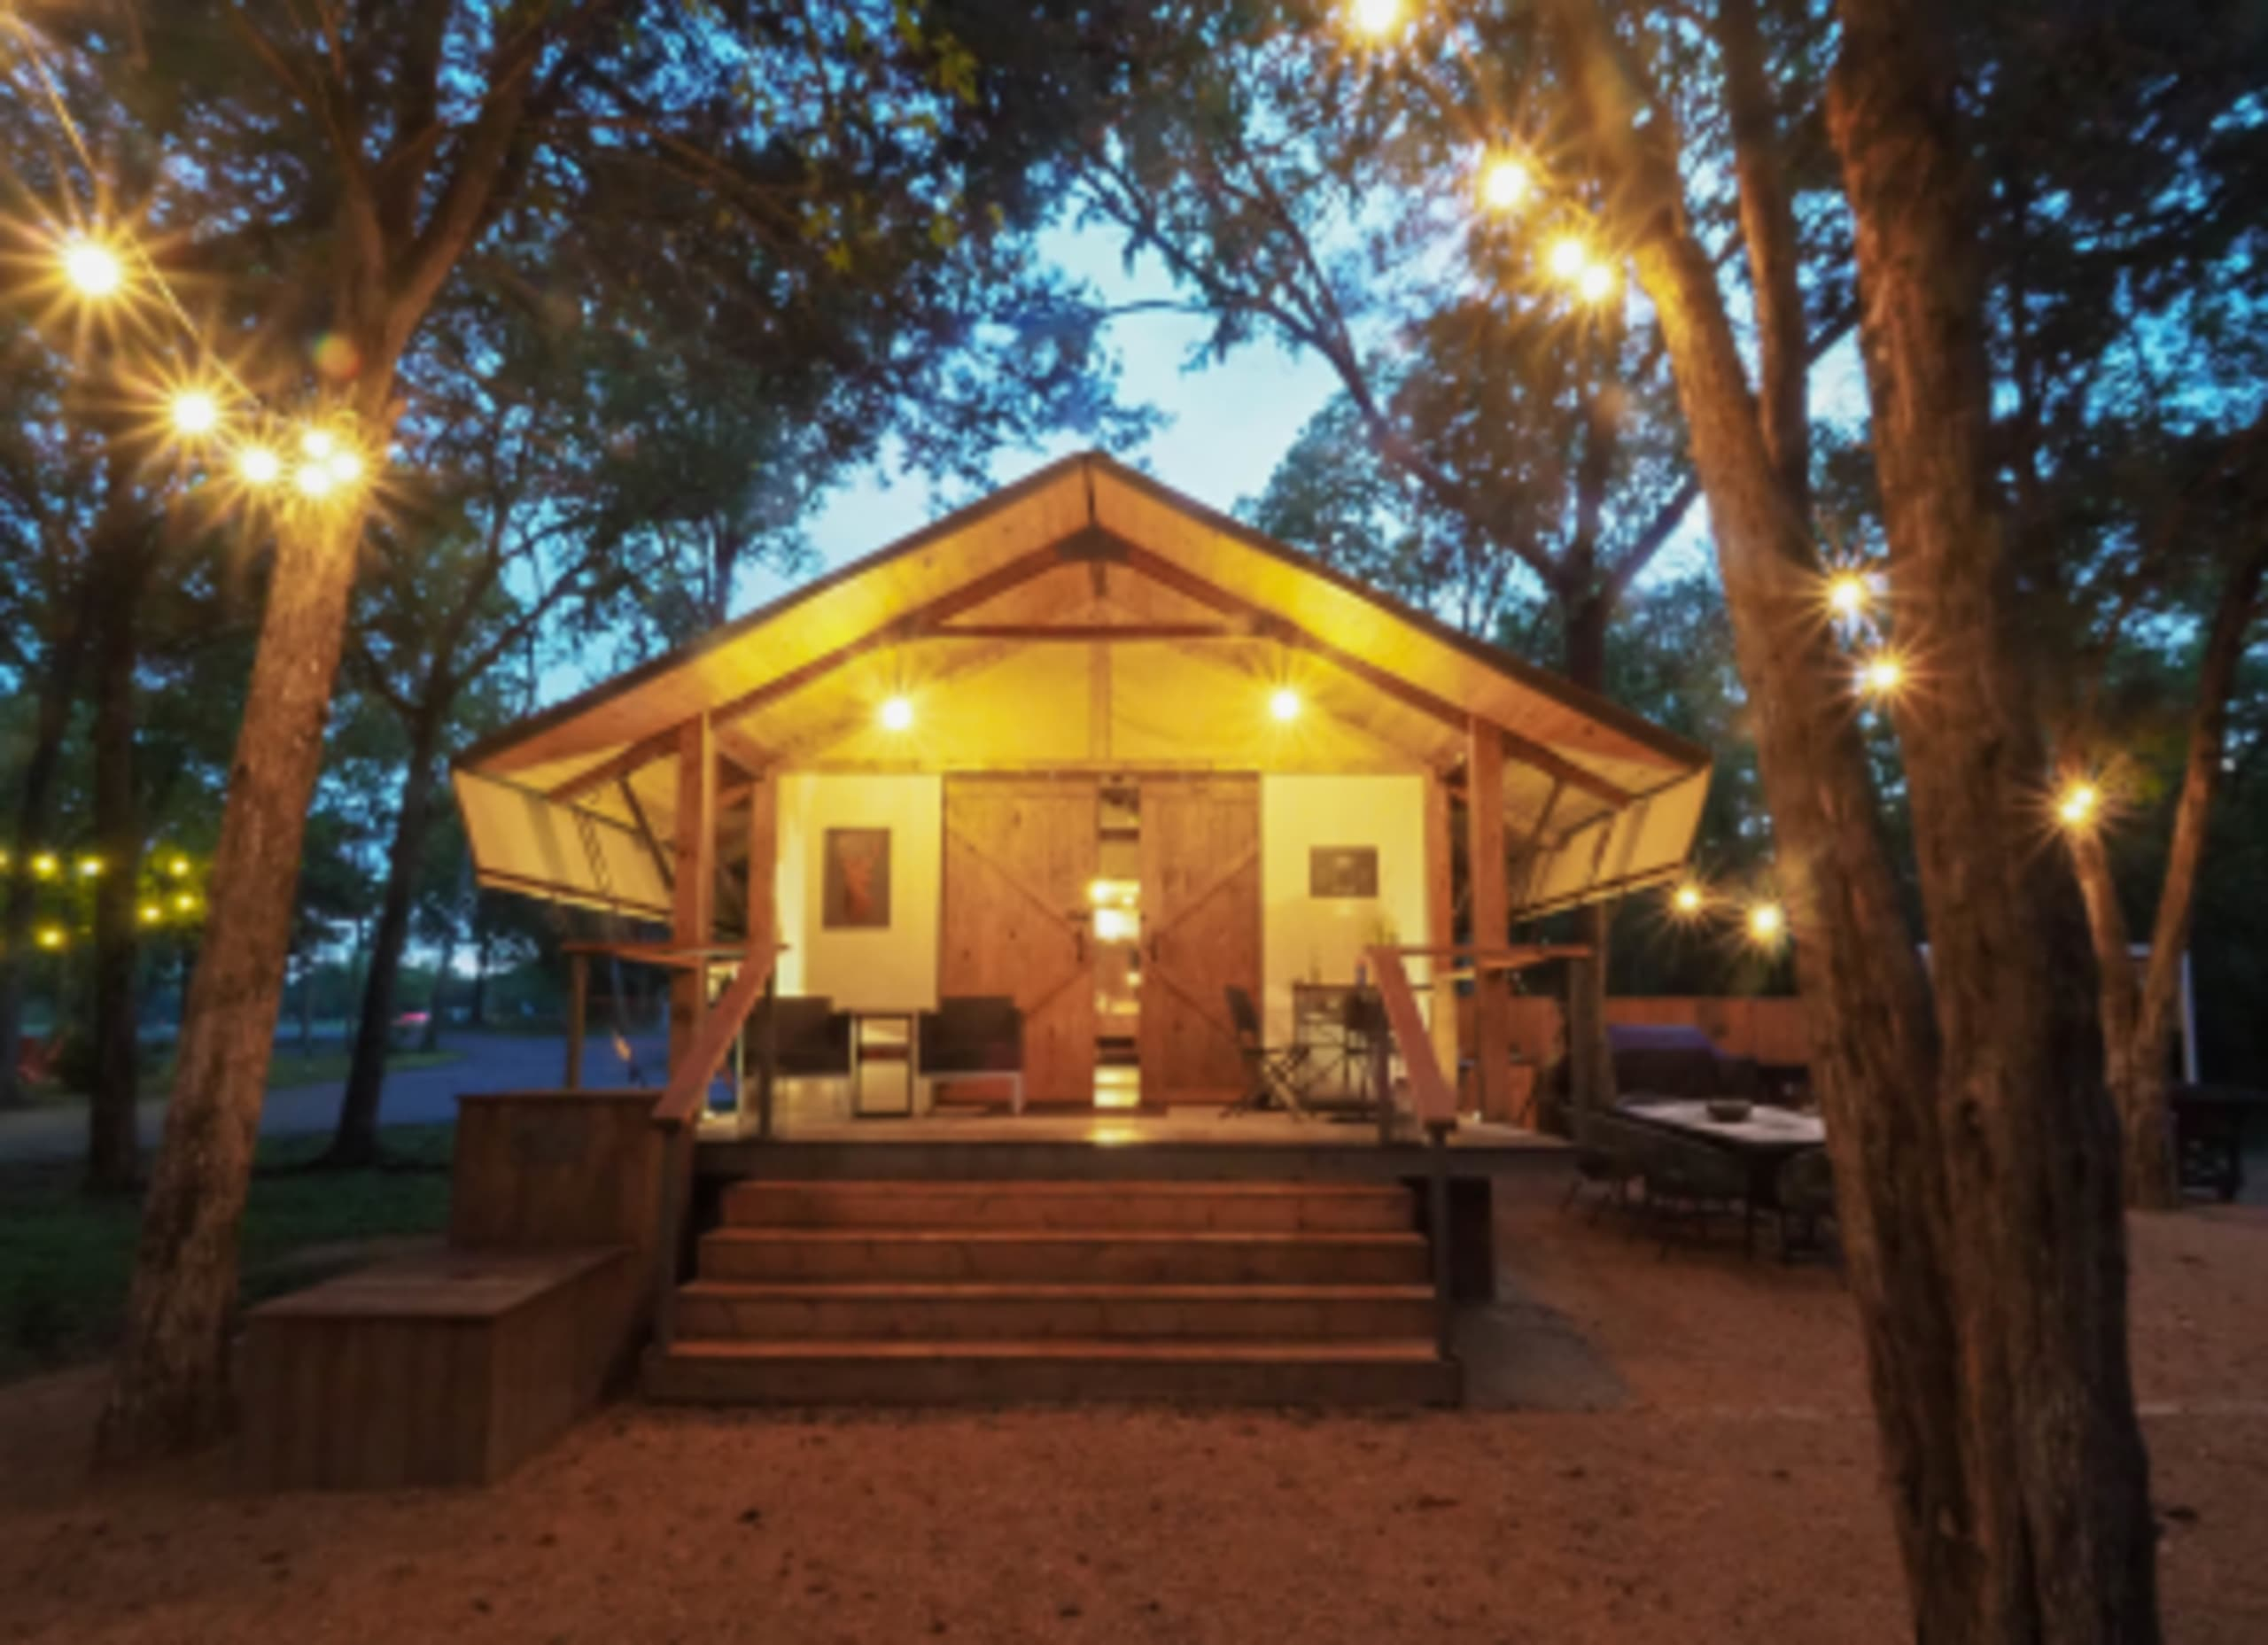 Ditching the tent: Glamping out at Lake Bastrop North Shore Park